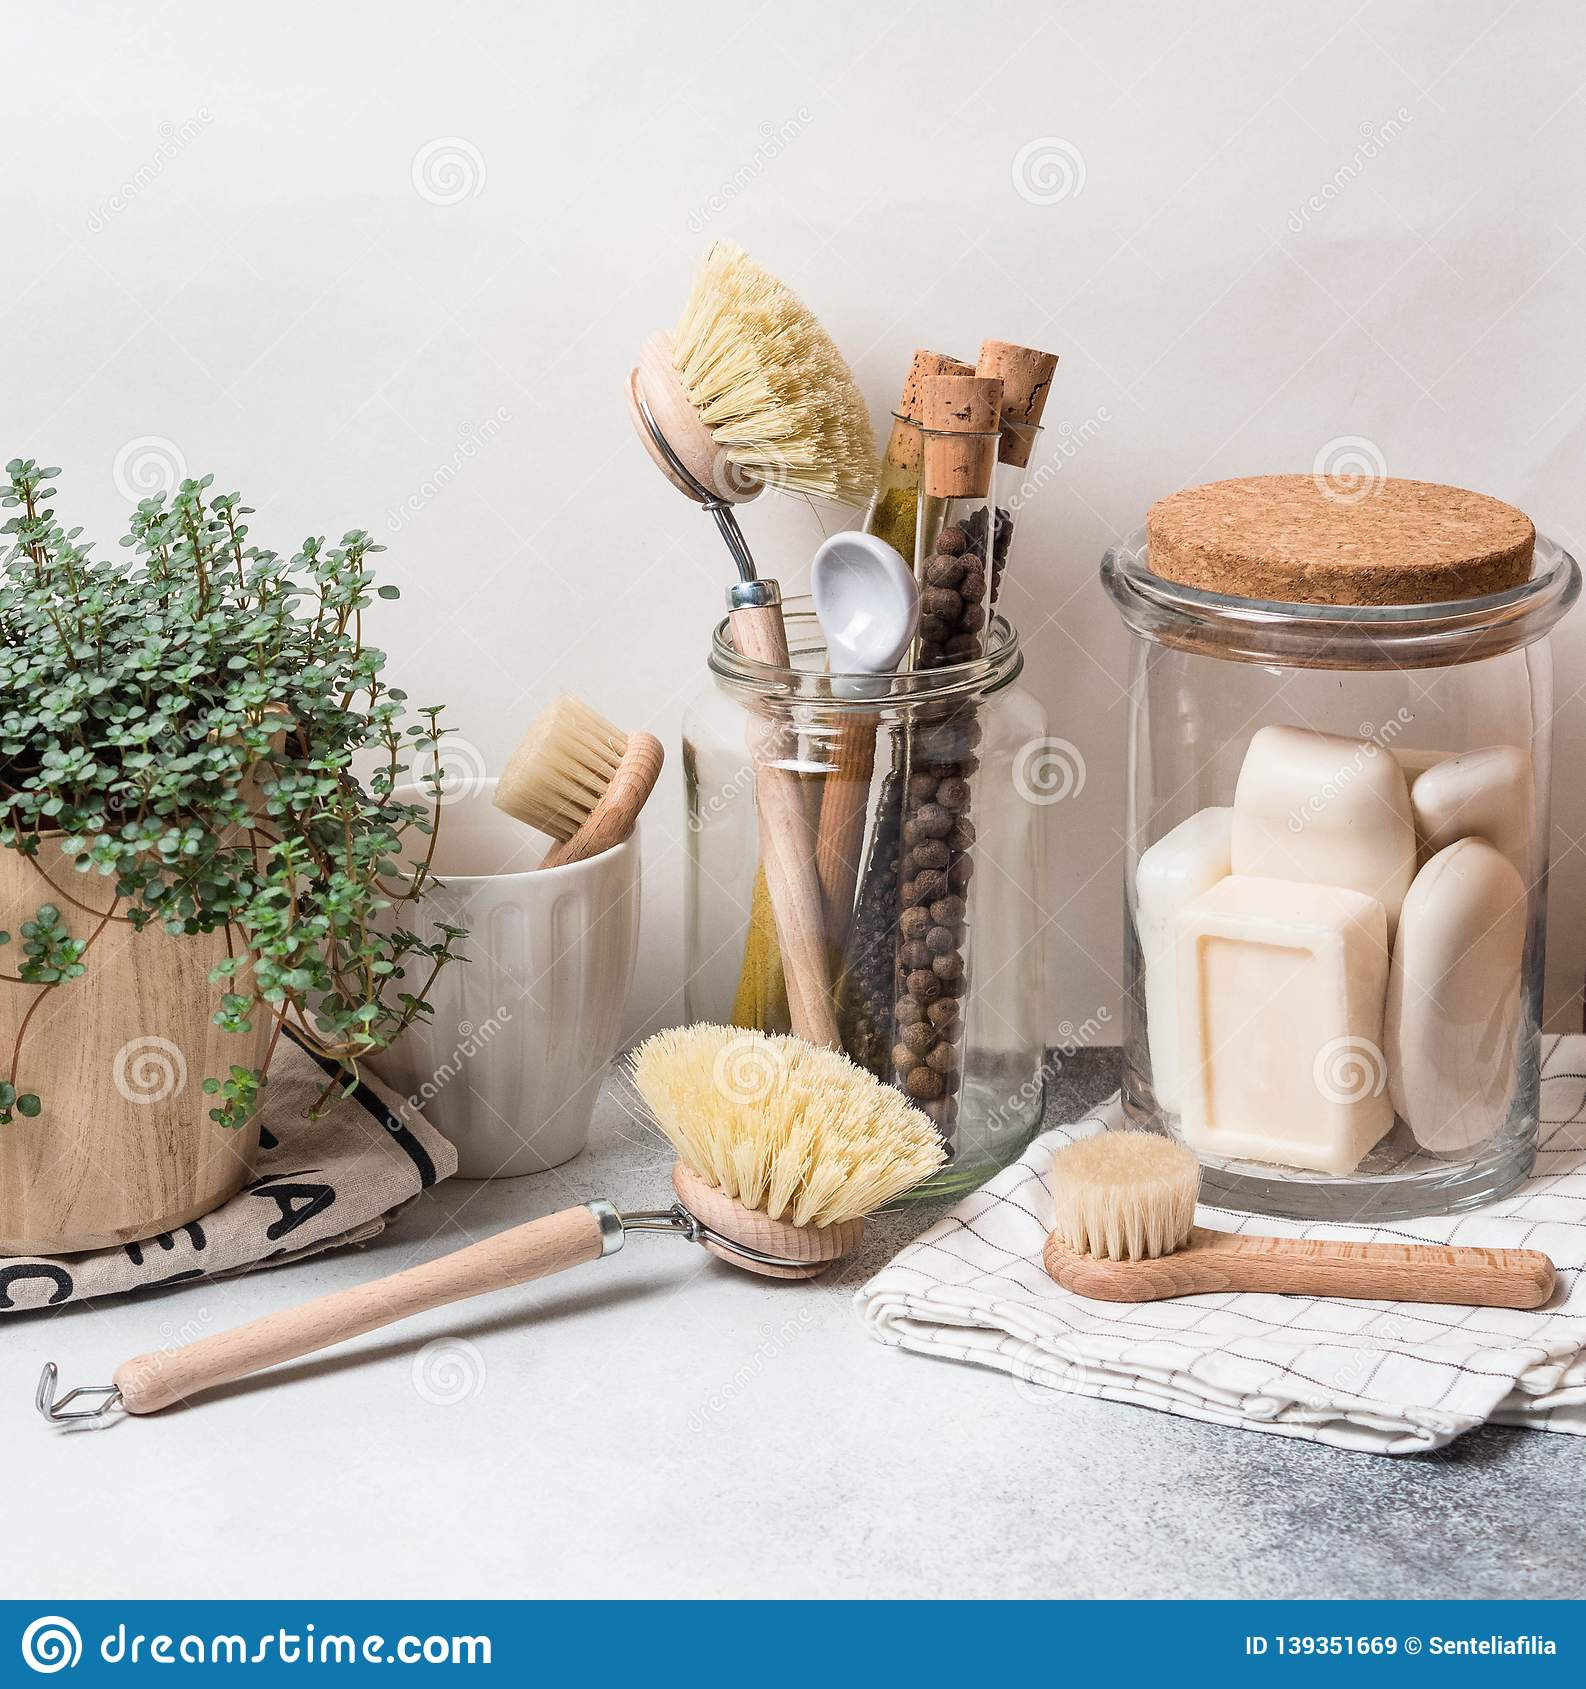 Zero waste concept. Eco-friendly kitchen set. Brushes, soap in jar, spices in glass tubes and plant in wood flowerpot